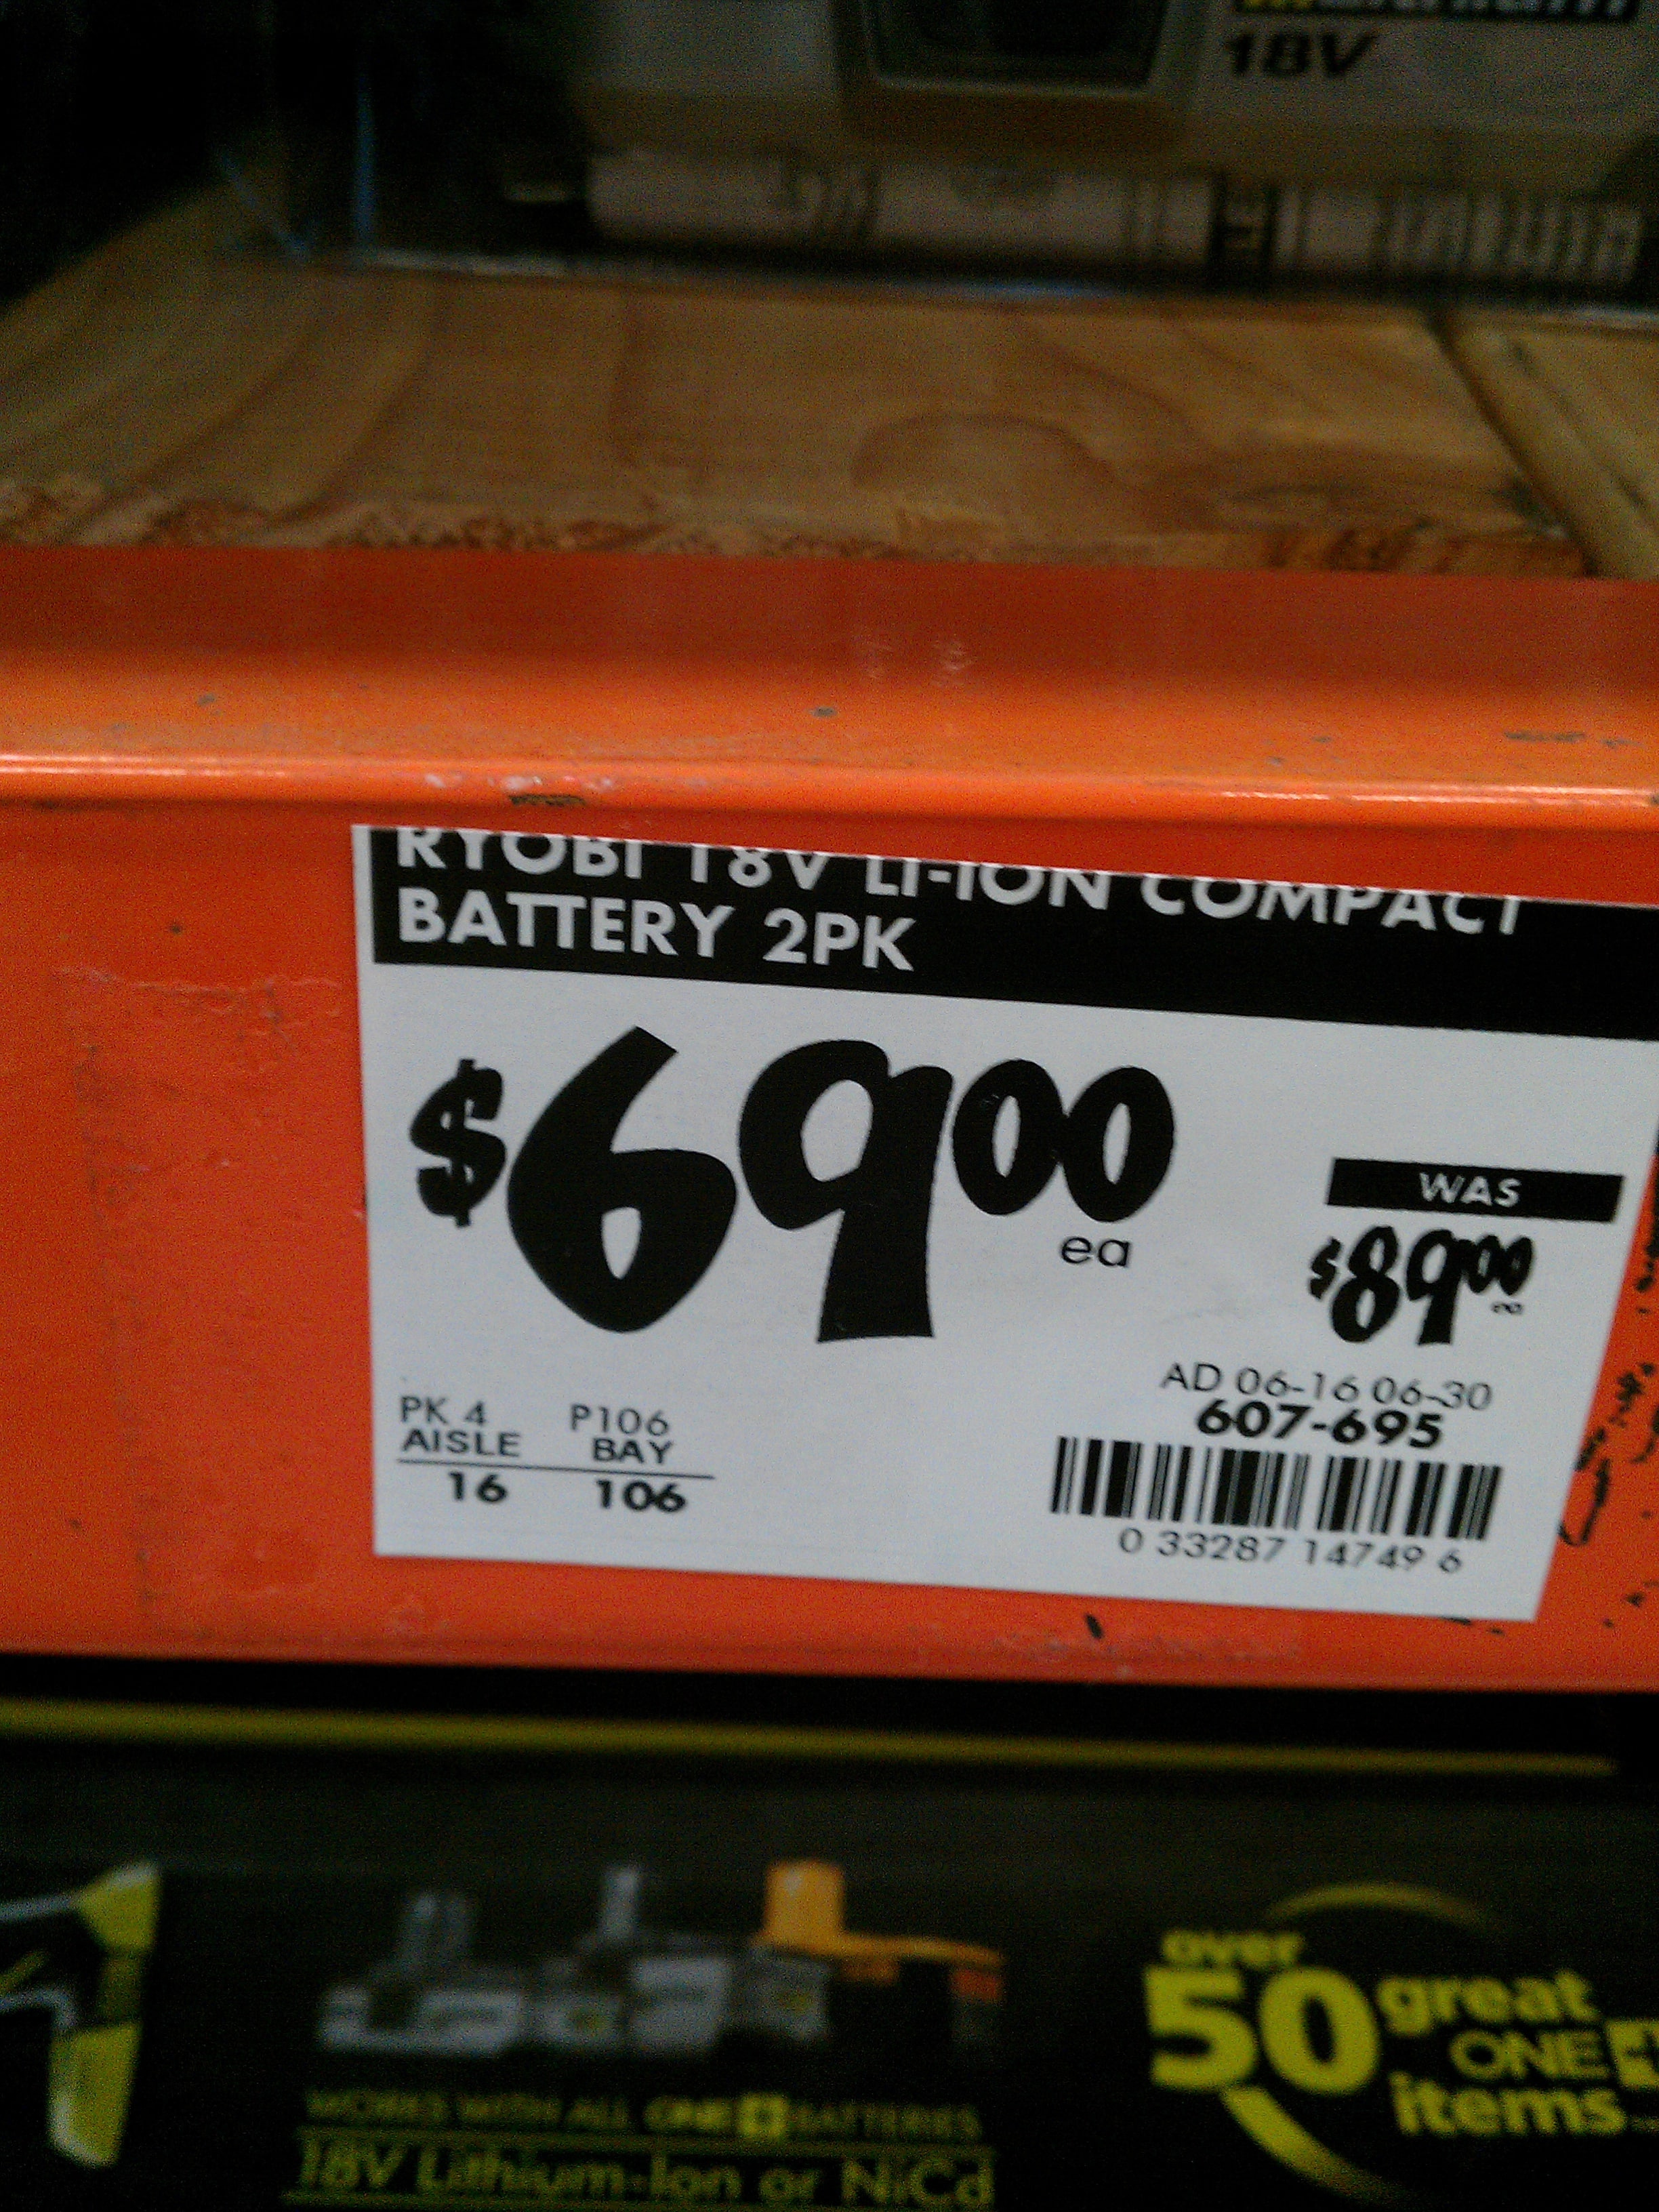 18V Ryobi ONE+ Lithium Ion Battery 2 pack $69 @ Home Depot B&M